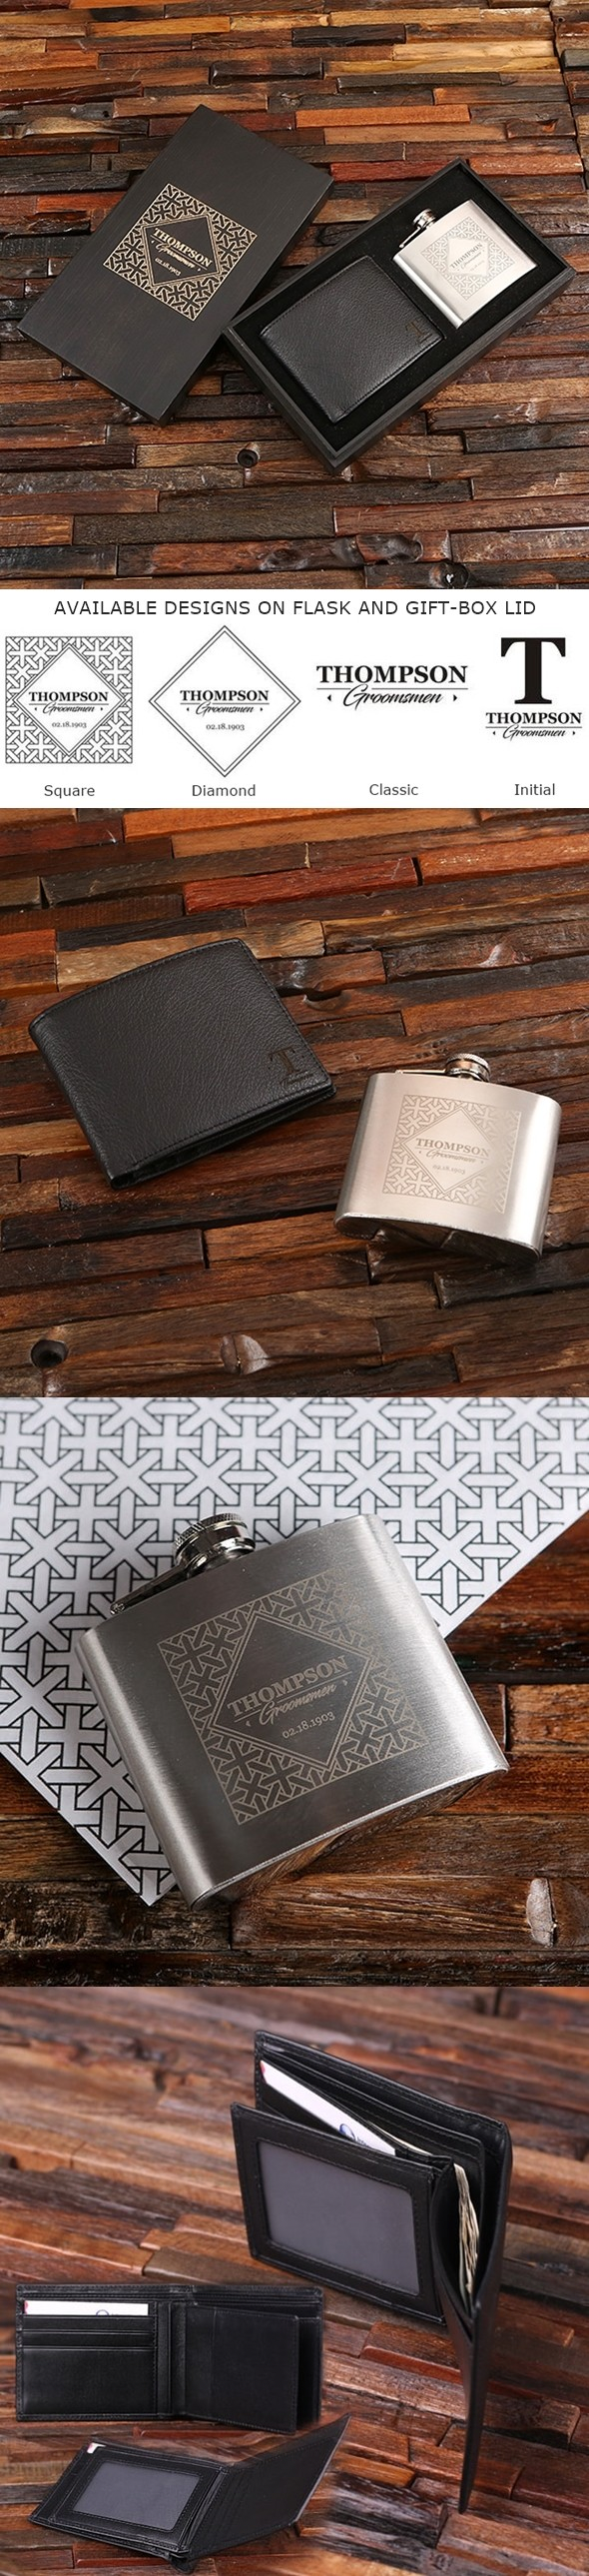 Personalized Leather Wallet & Swing-Top Flask in Black Sheen Wood Box